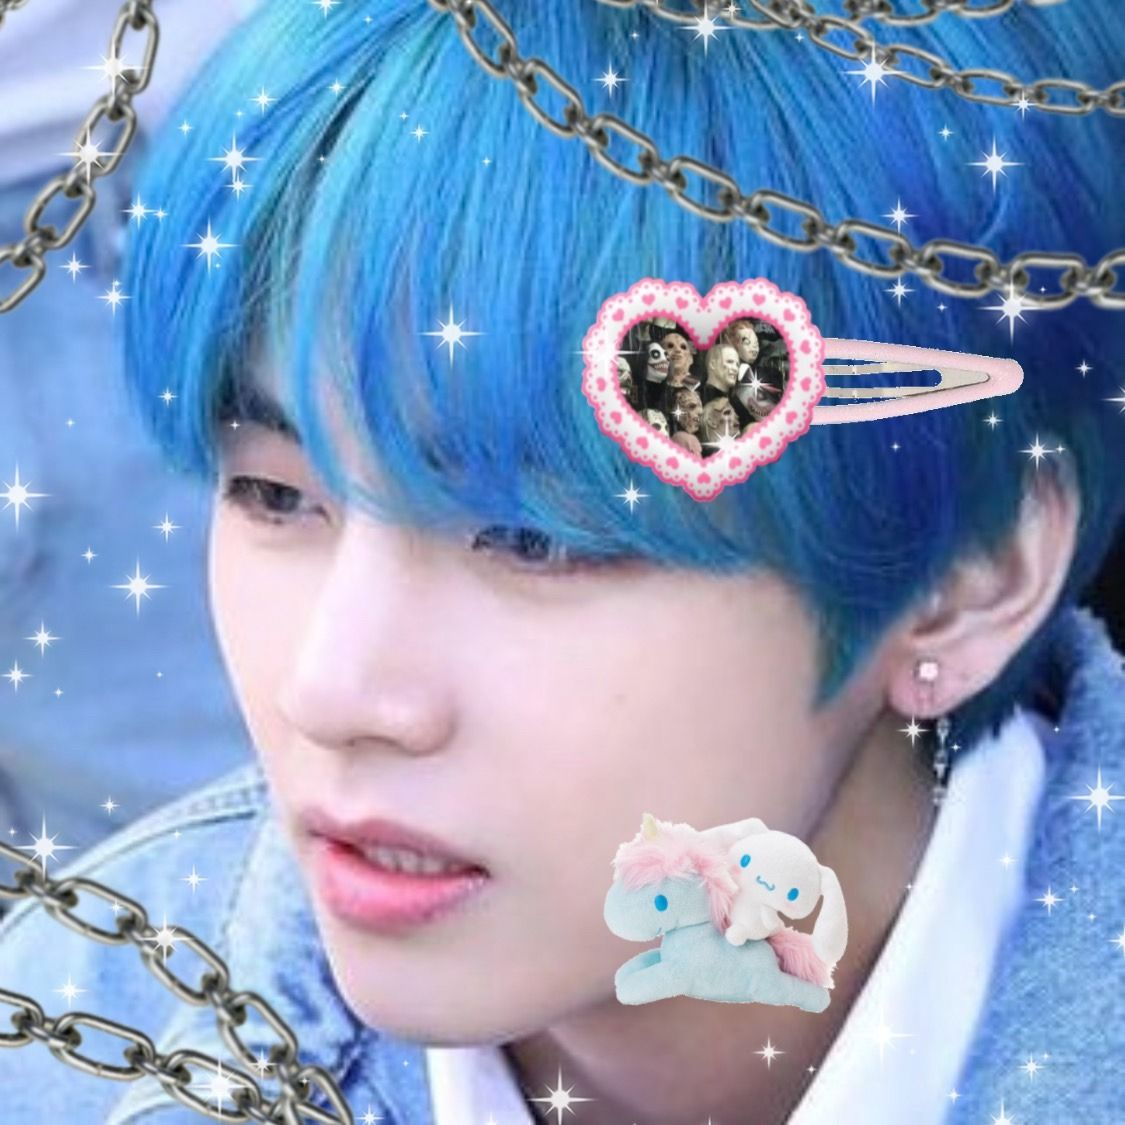 Pin by re7a b070 on Bts Taehyung, Twitter icon, Bangtan